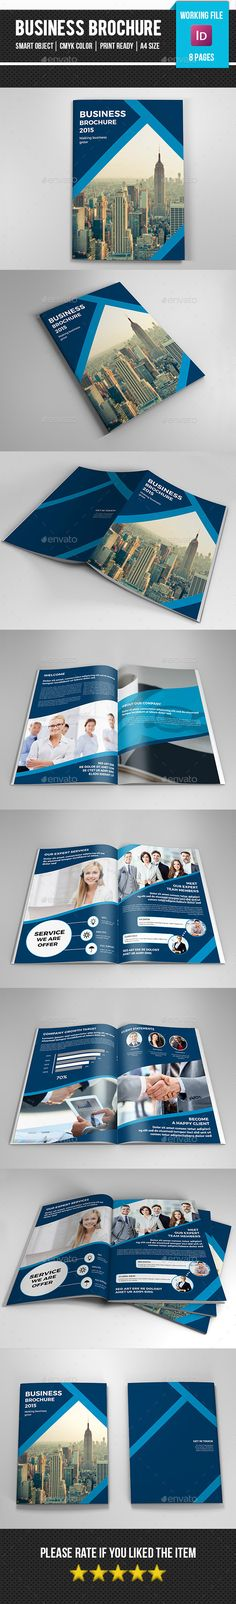 Indesign Corporate Brochure Template #design #print Download: http://graphicriver.net/item/indesign-corporate-brochure271/11984383?ref=ksioks